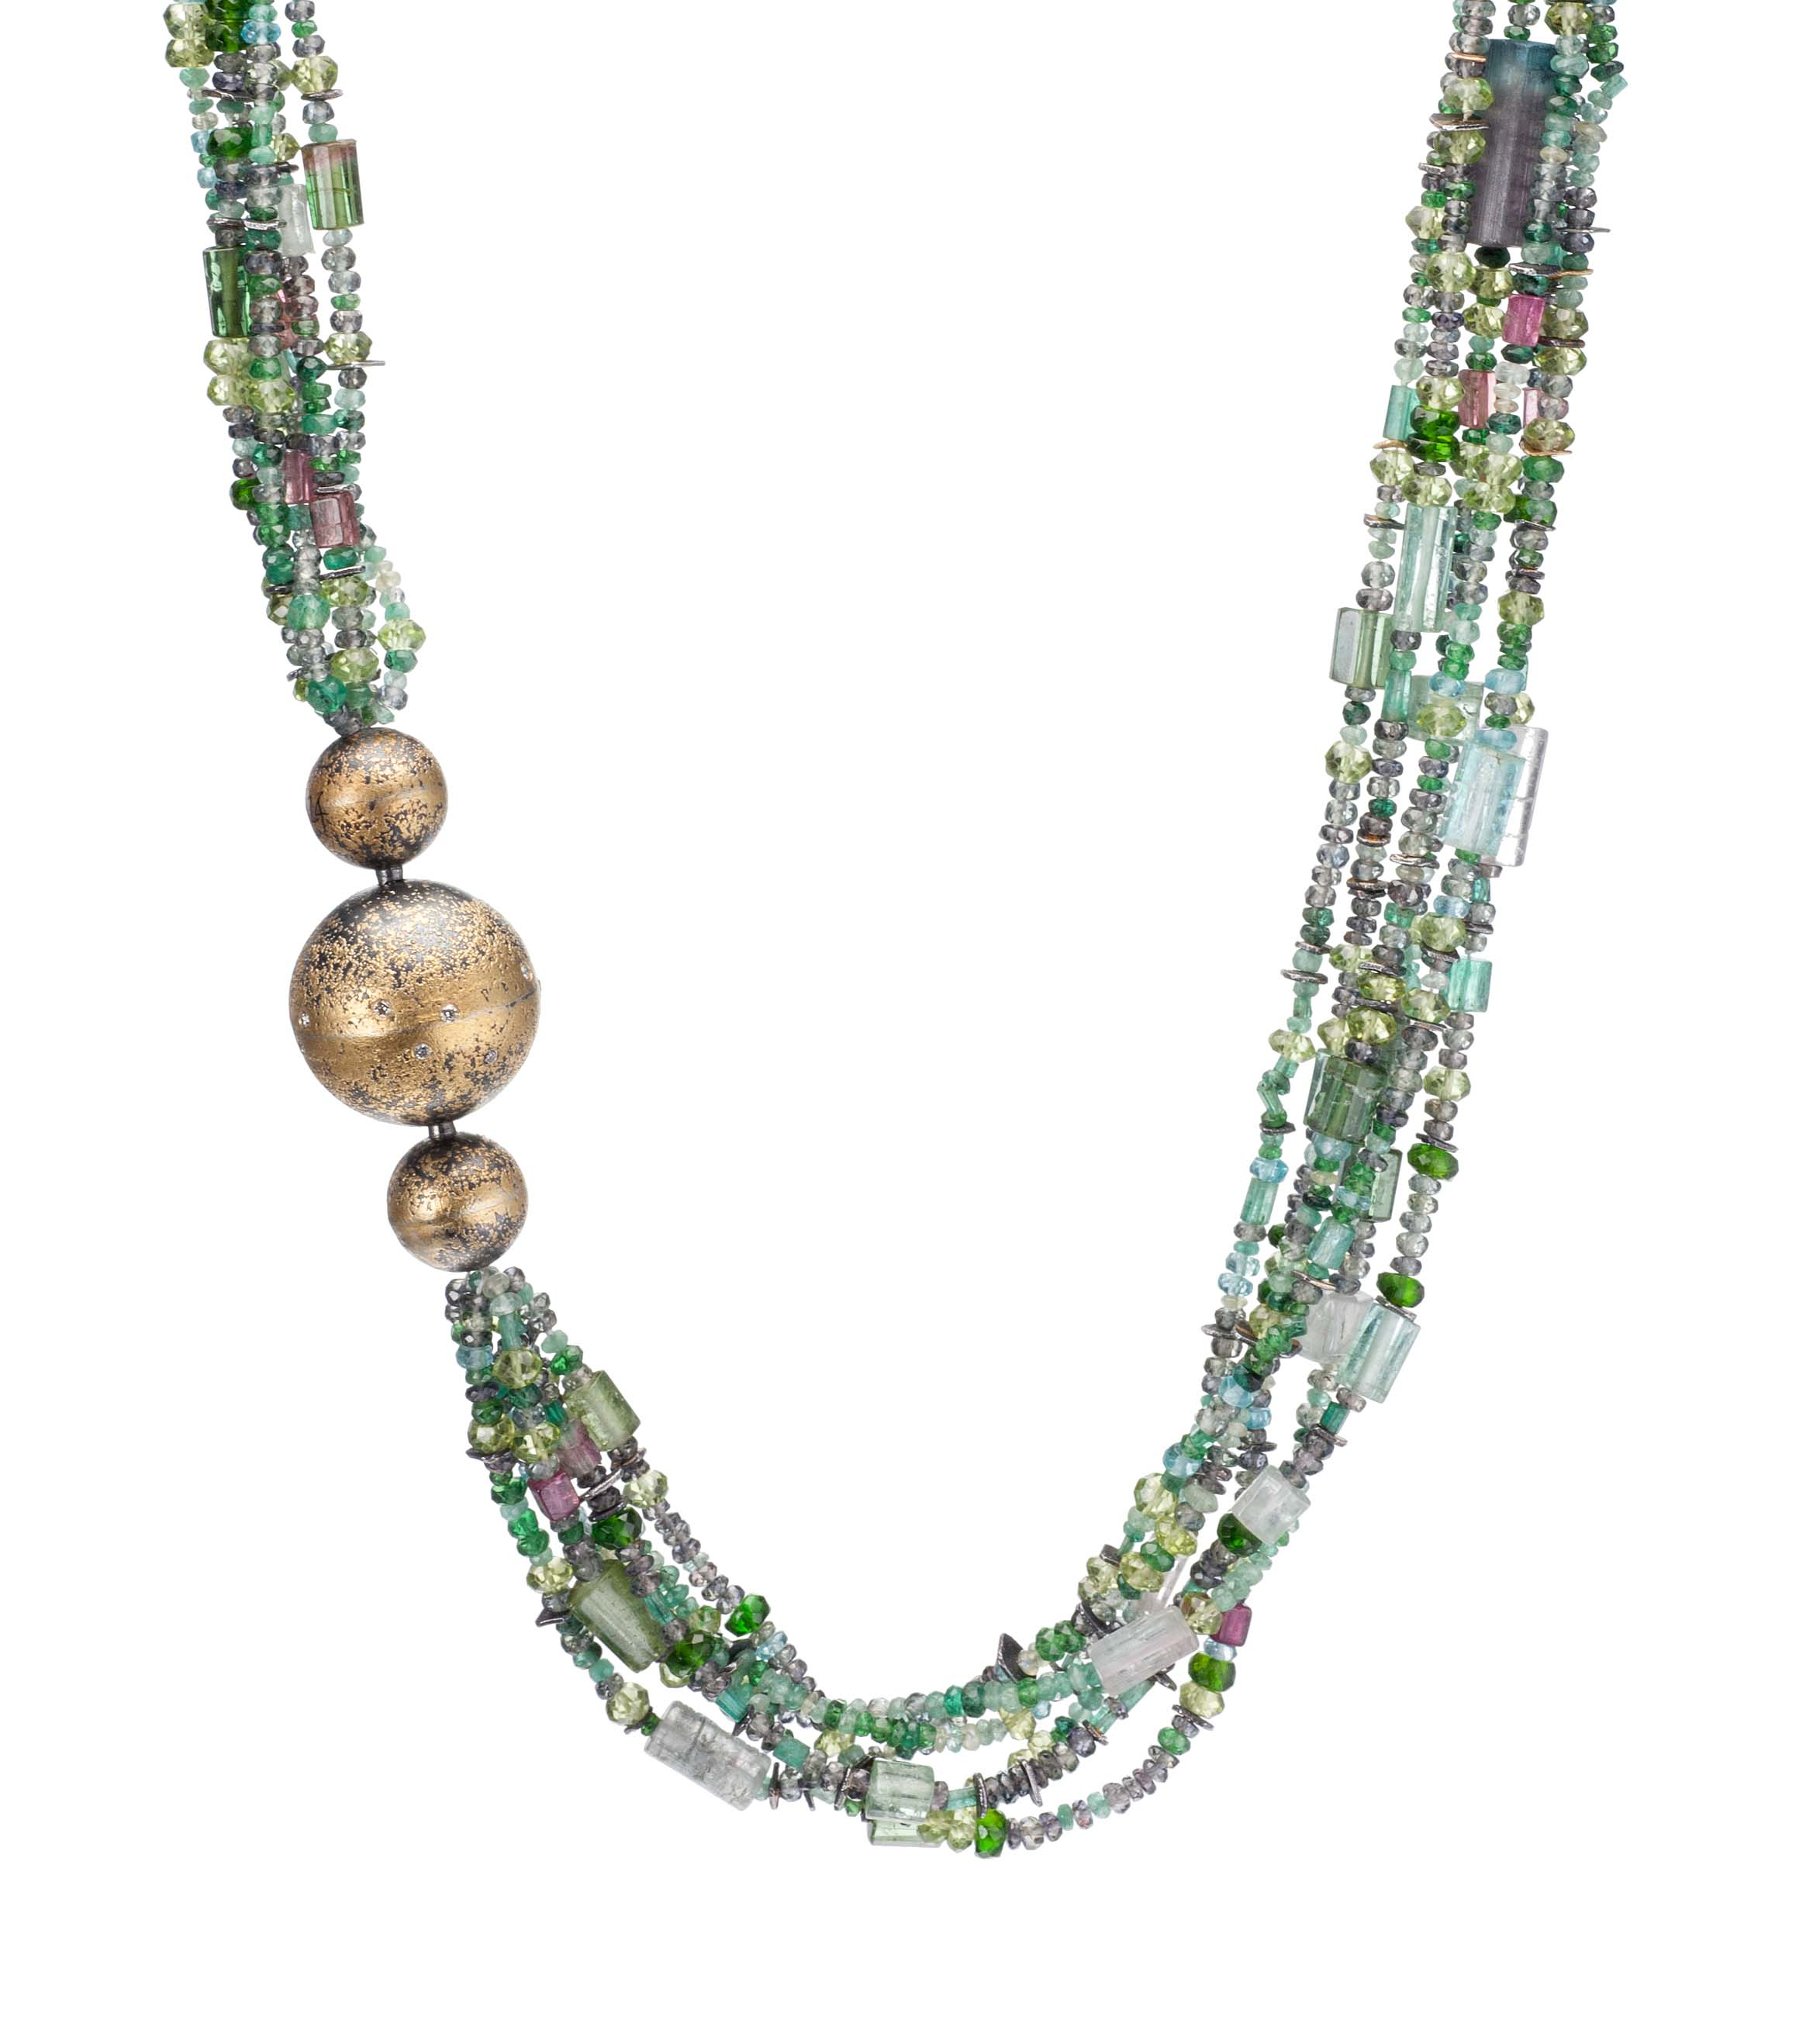 Mixed-gemstone necklace